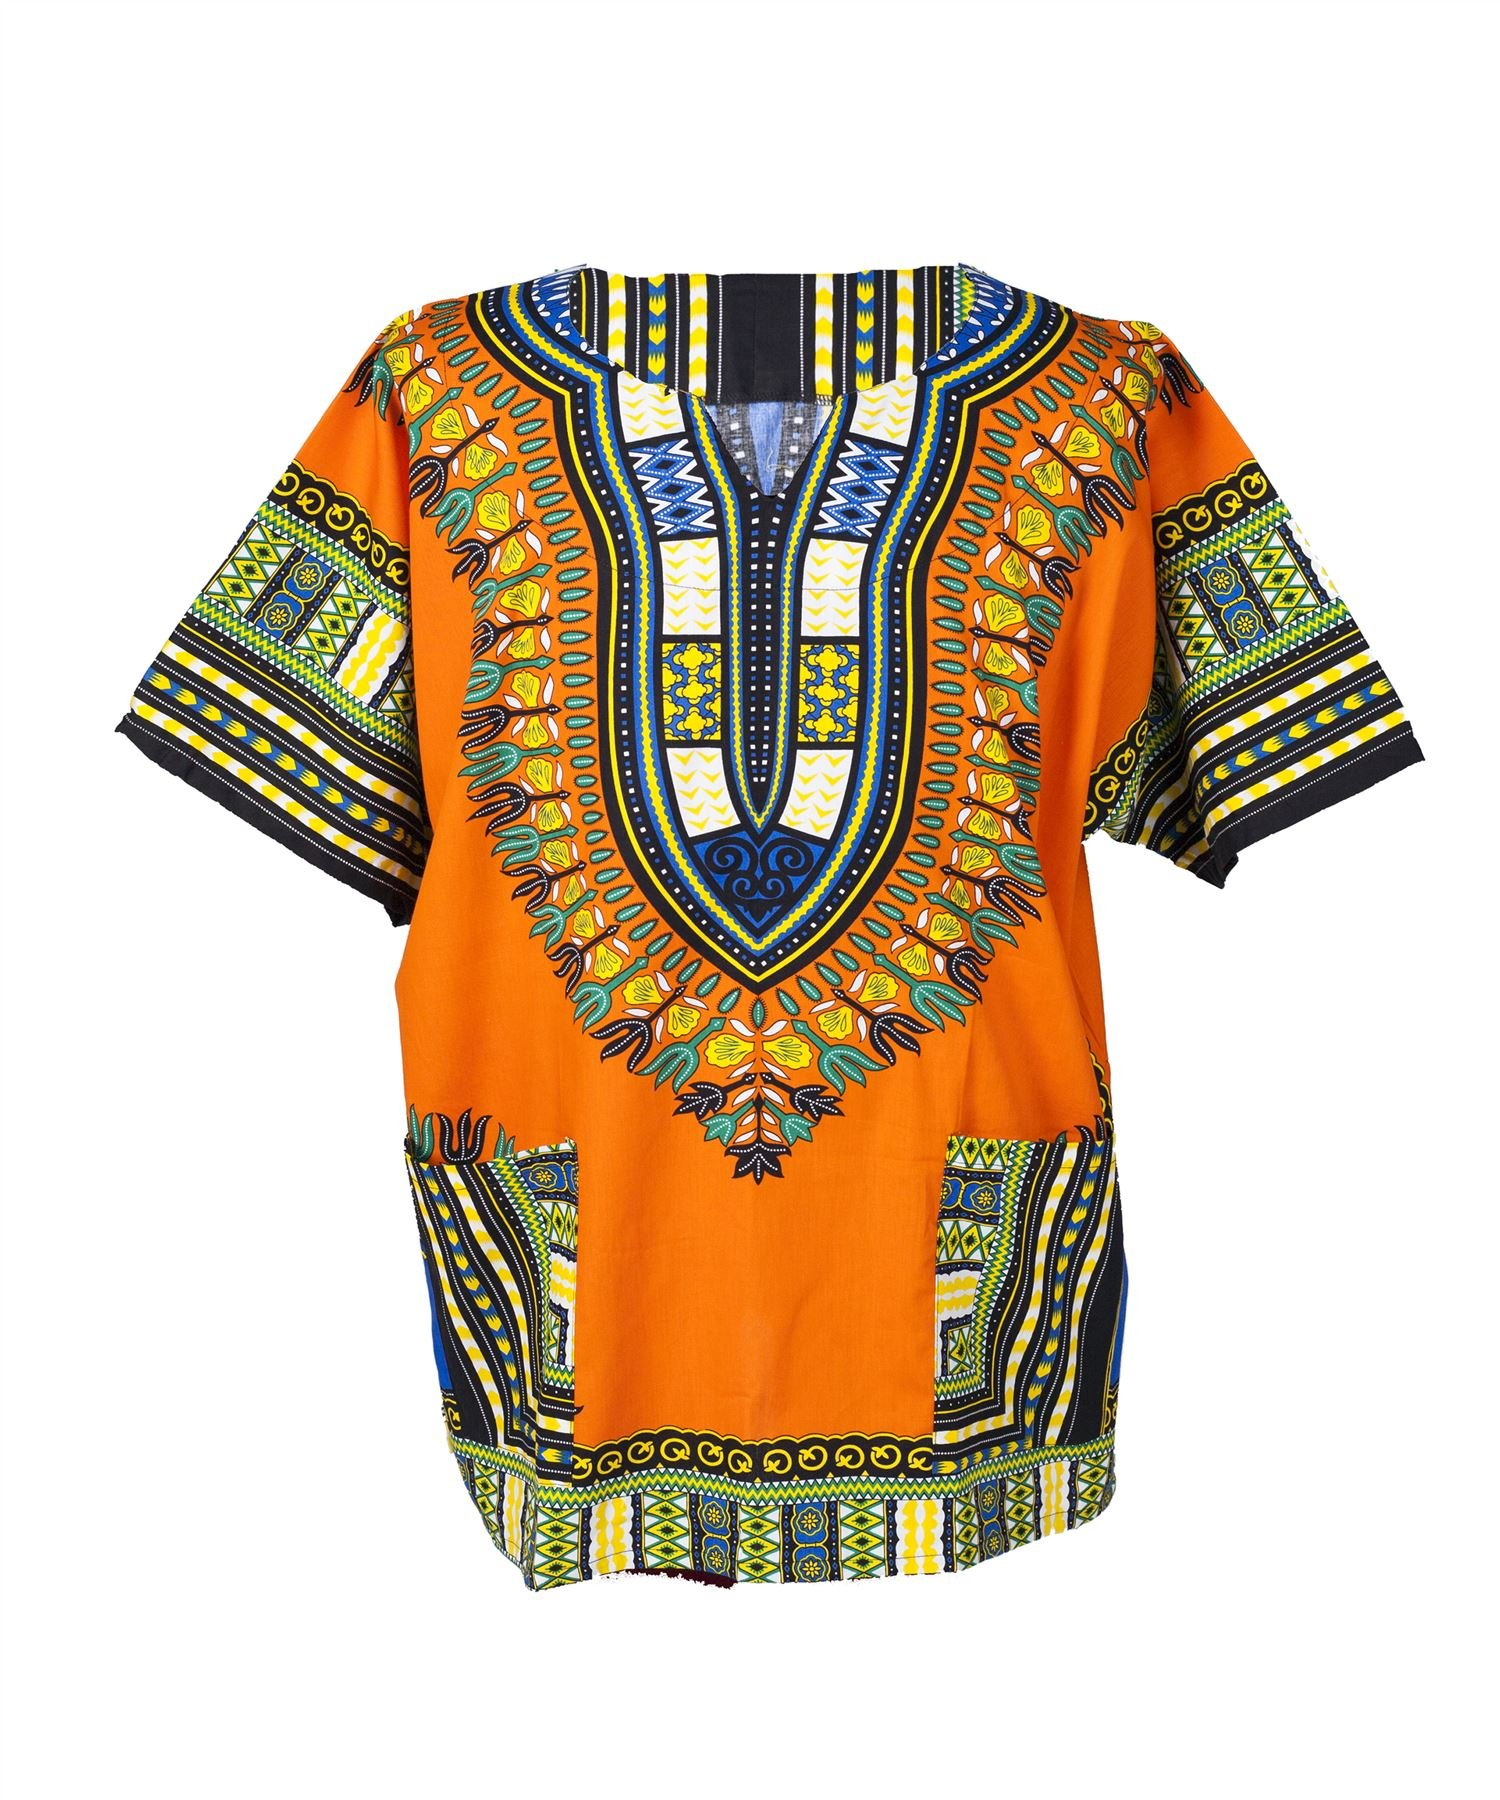 Lofbaz Traditional African Print Unisex Dashiki Size XXL Orange by Lofbaz (Image #1)